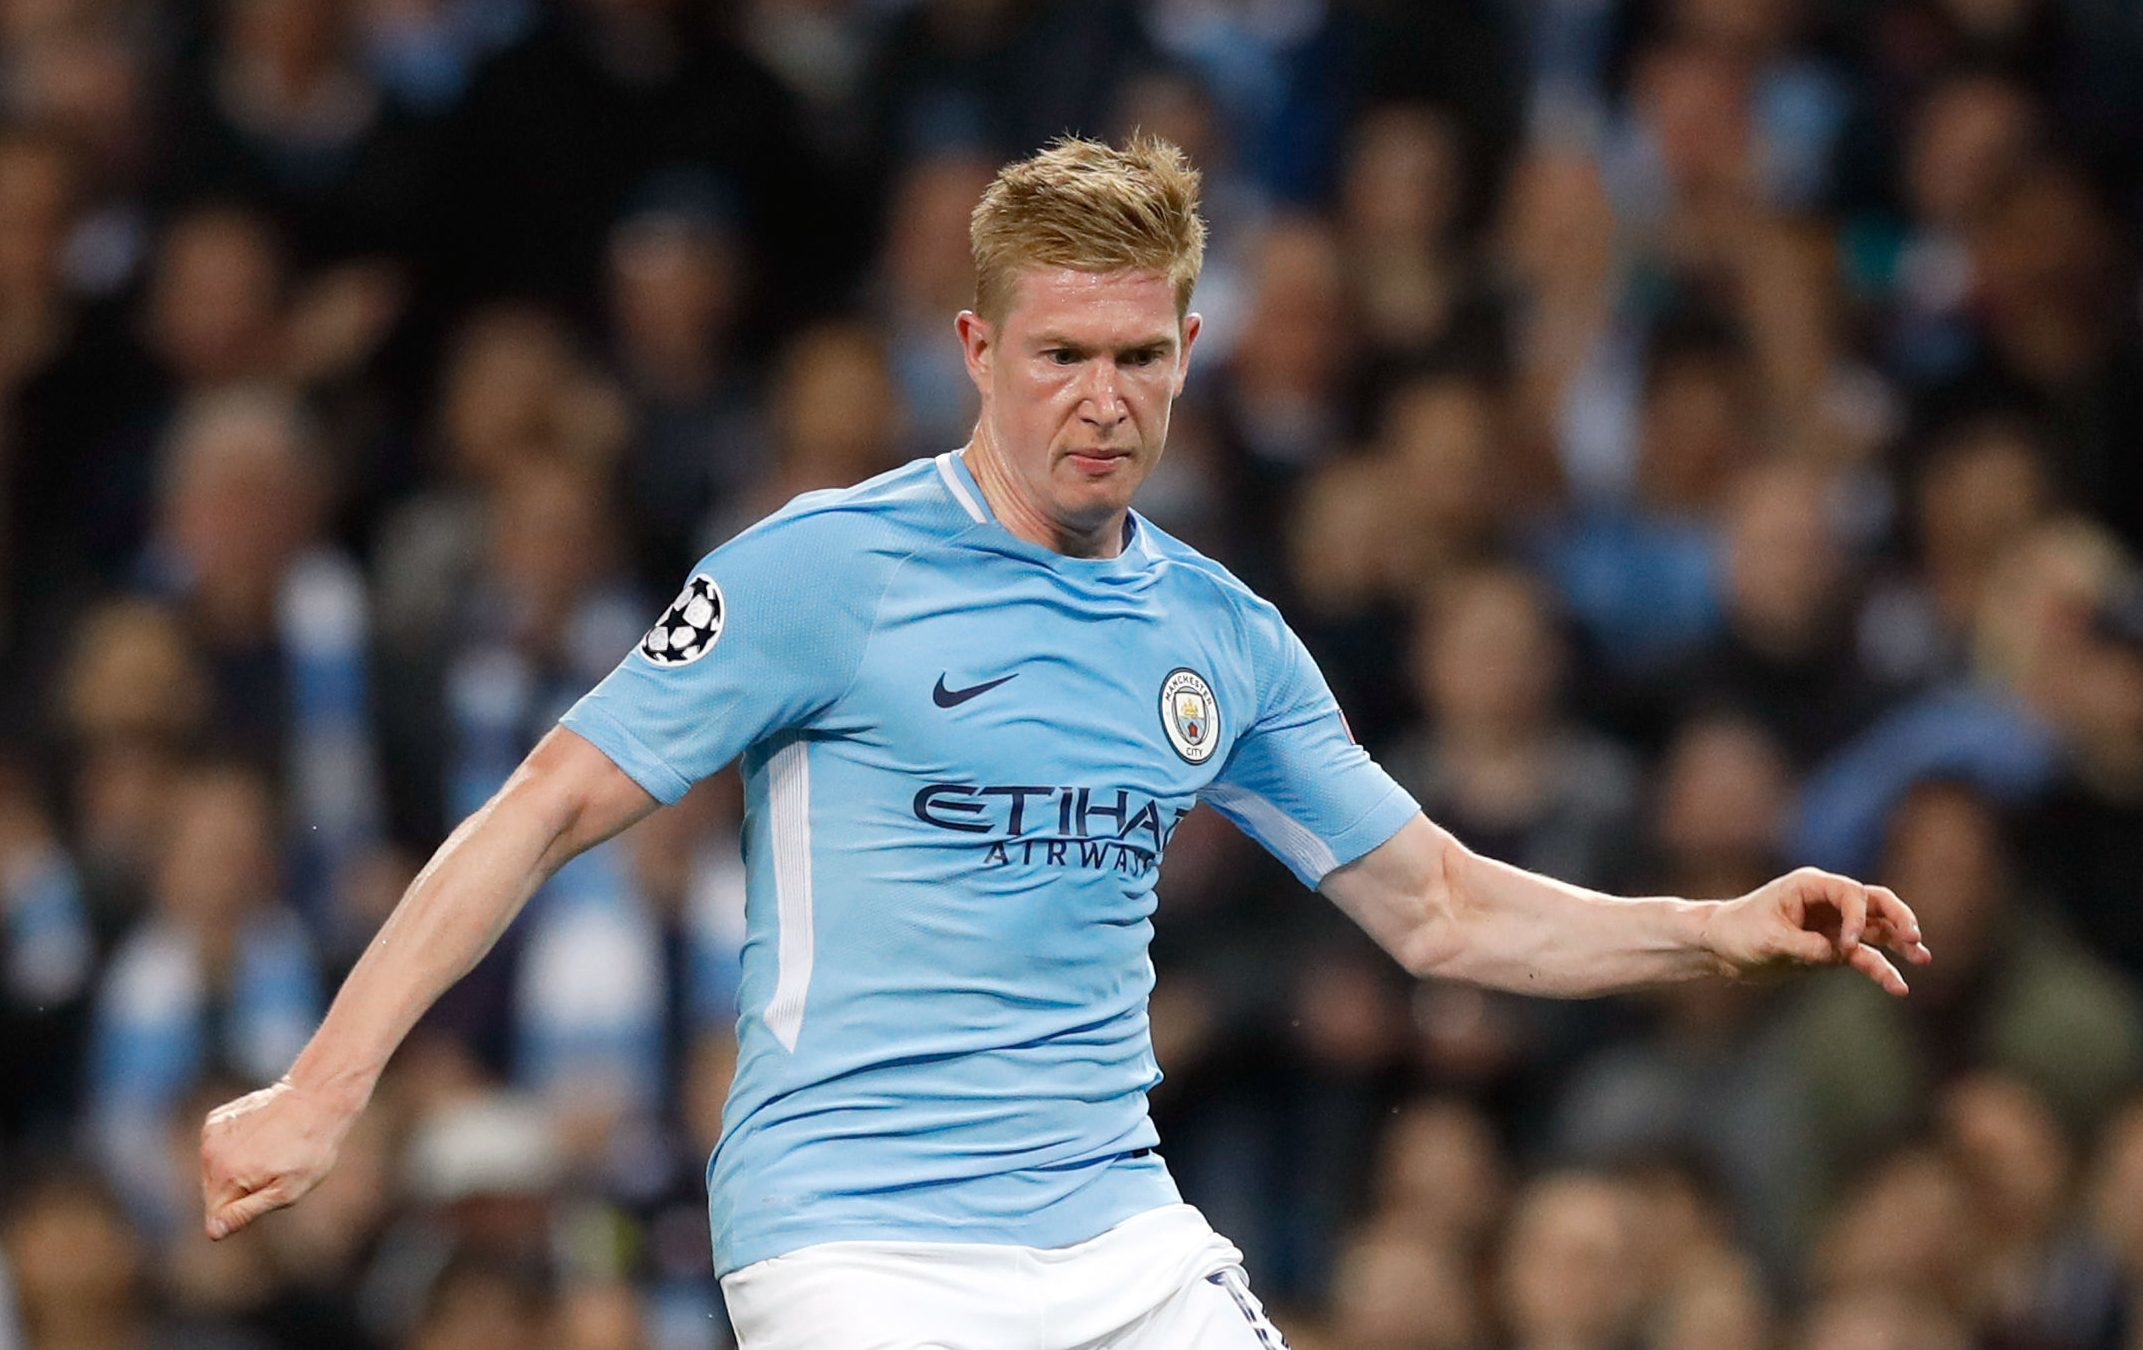 Manchester City's Kevin De Bruyne. (Martin Rickett/PA Wire)